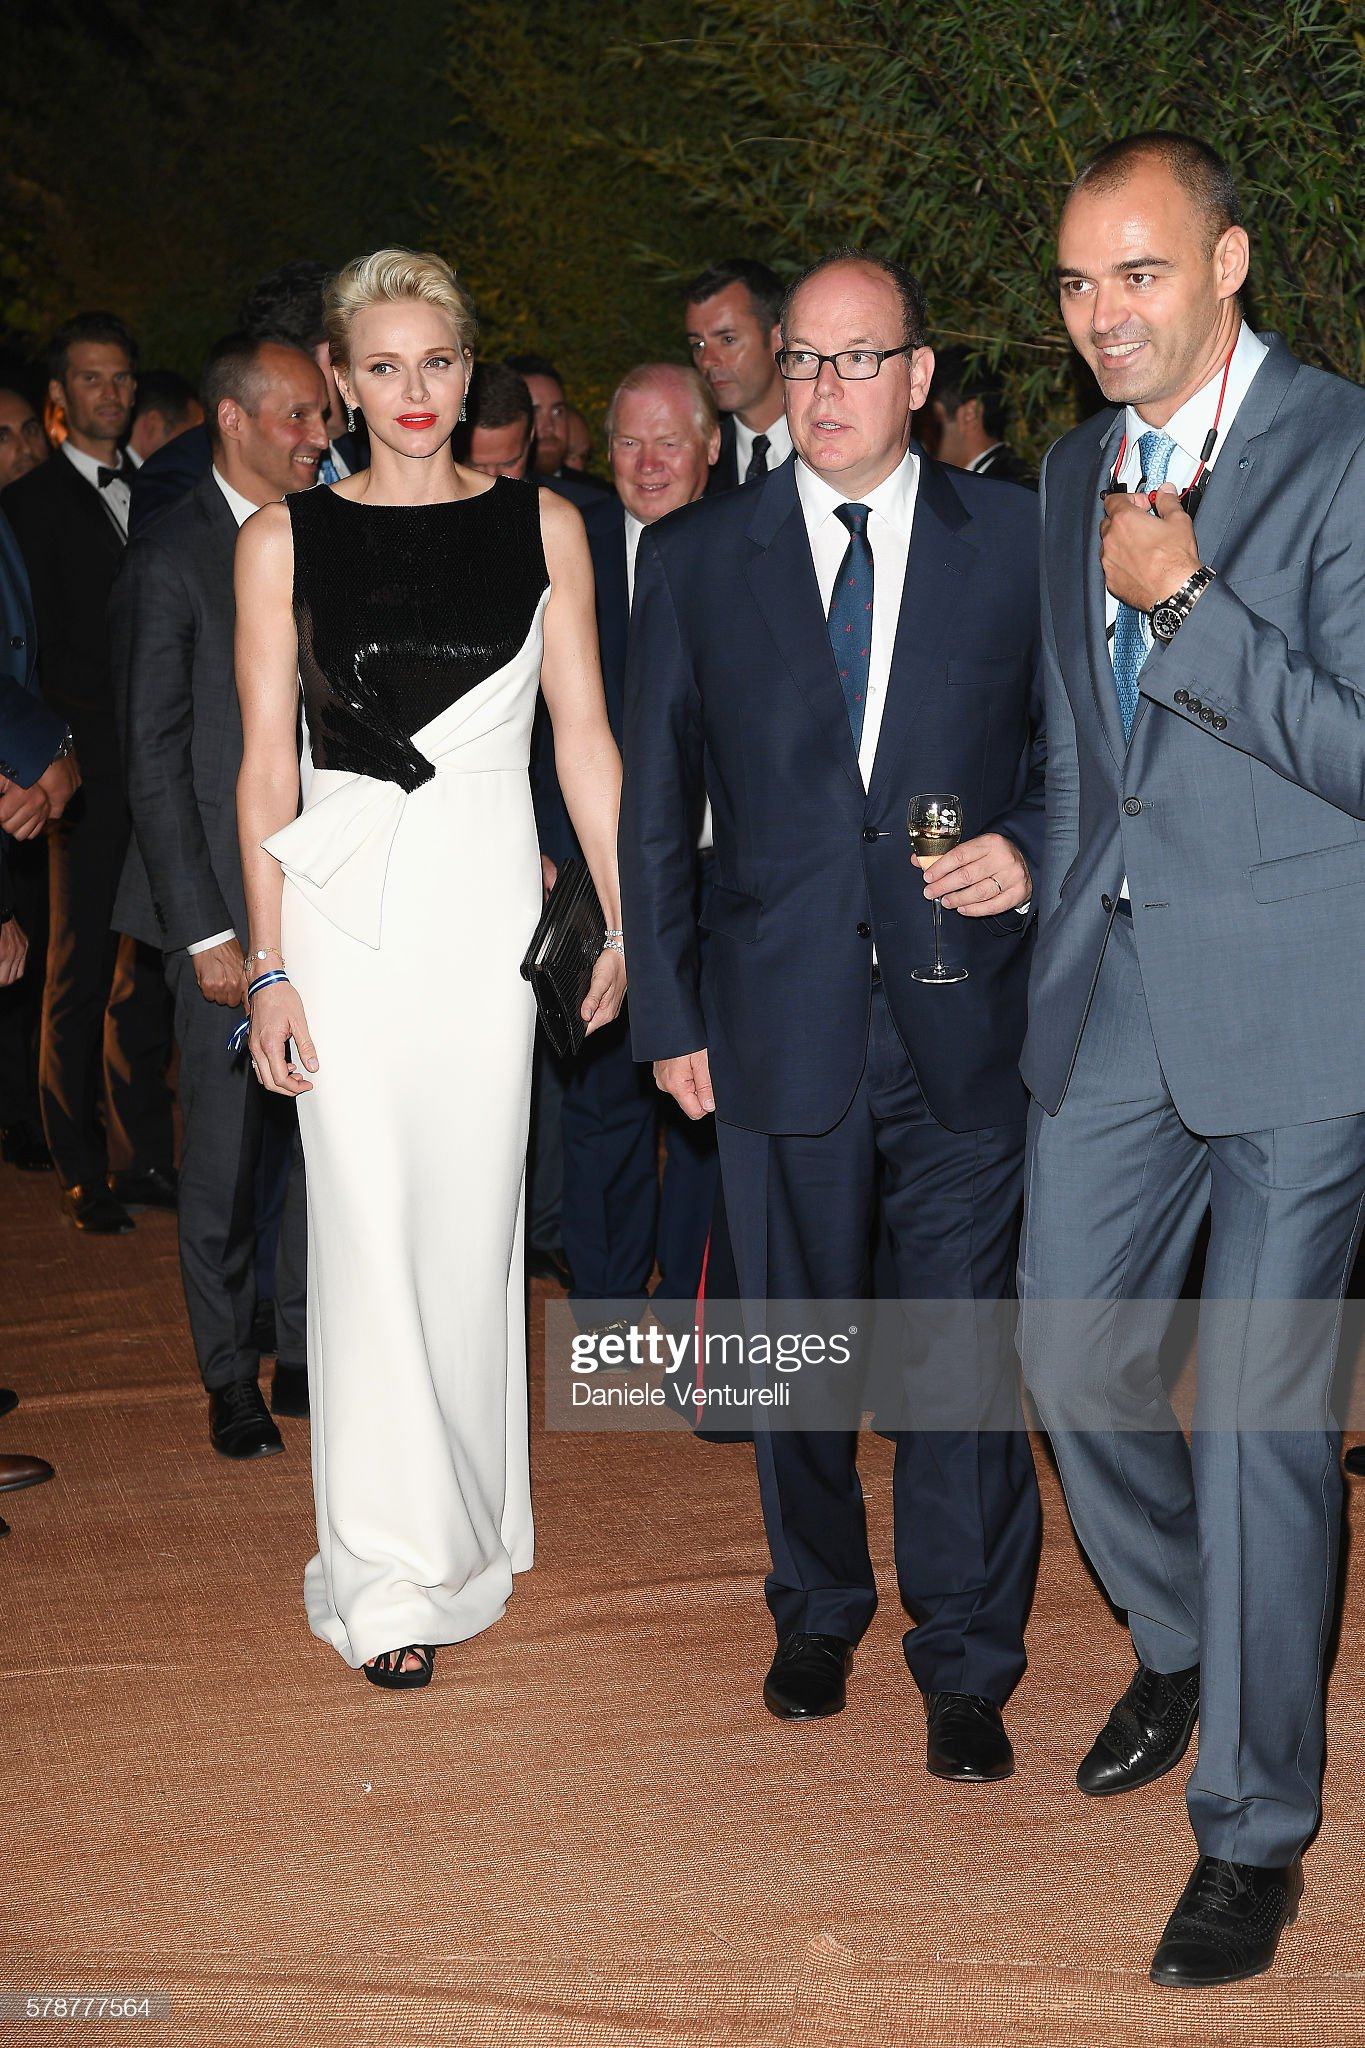 The Leonardo DiCaprio Foundation 3rd Annual Saint-Tropez Gala - Cocktail reception : News Photo